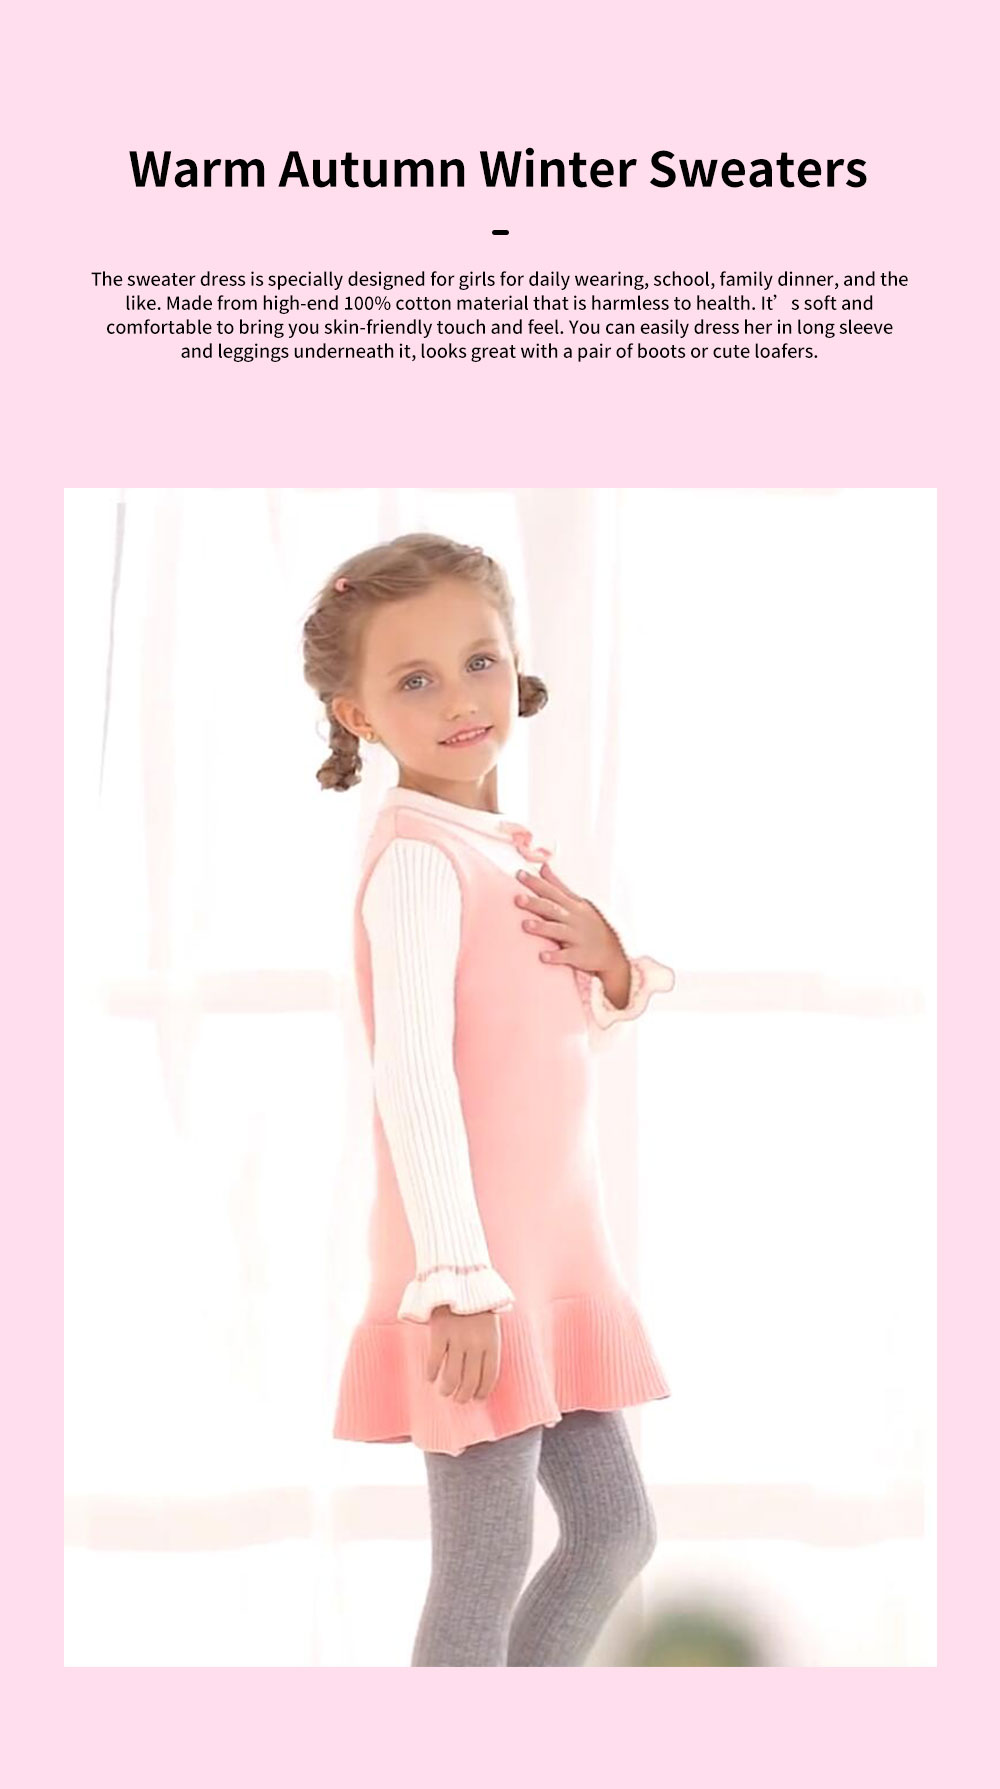 Purified Cotton Girls Sweater Dress Long Sleeve One-piece Warm No-burr Dress for Winter Autumn Princess Dress 0